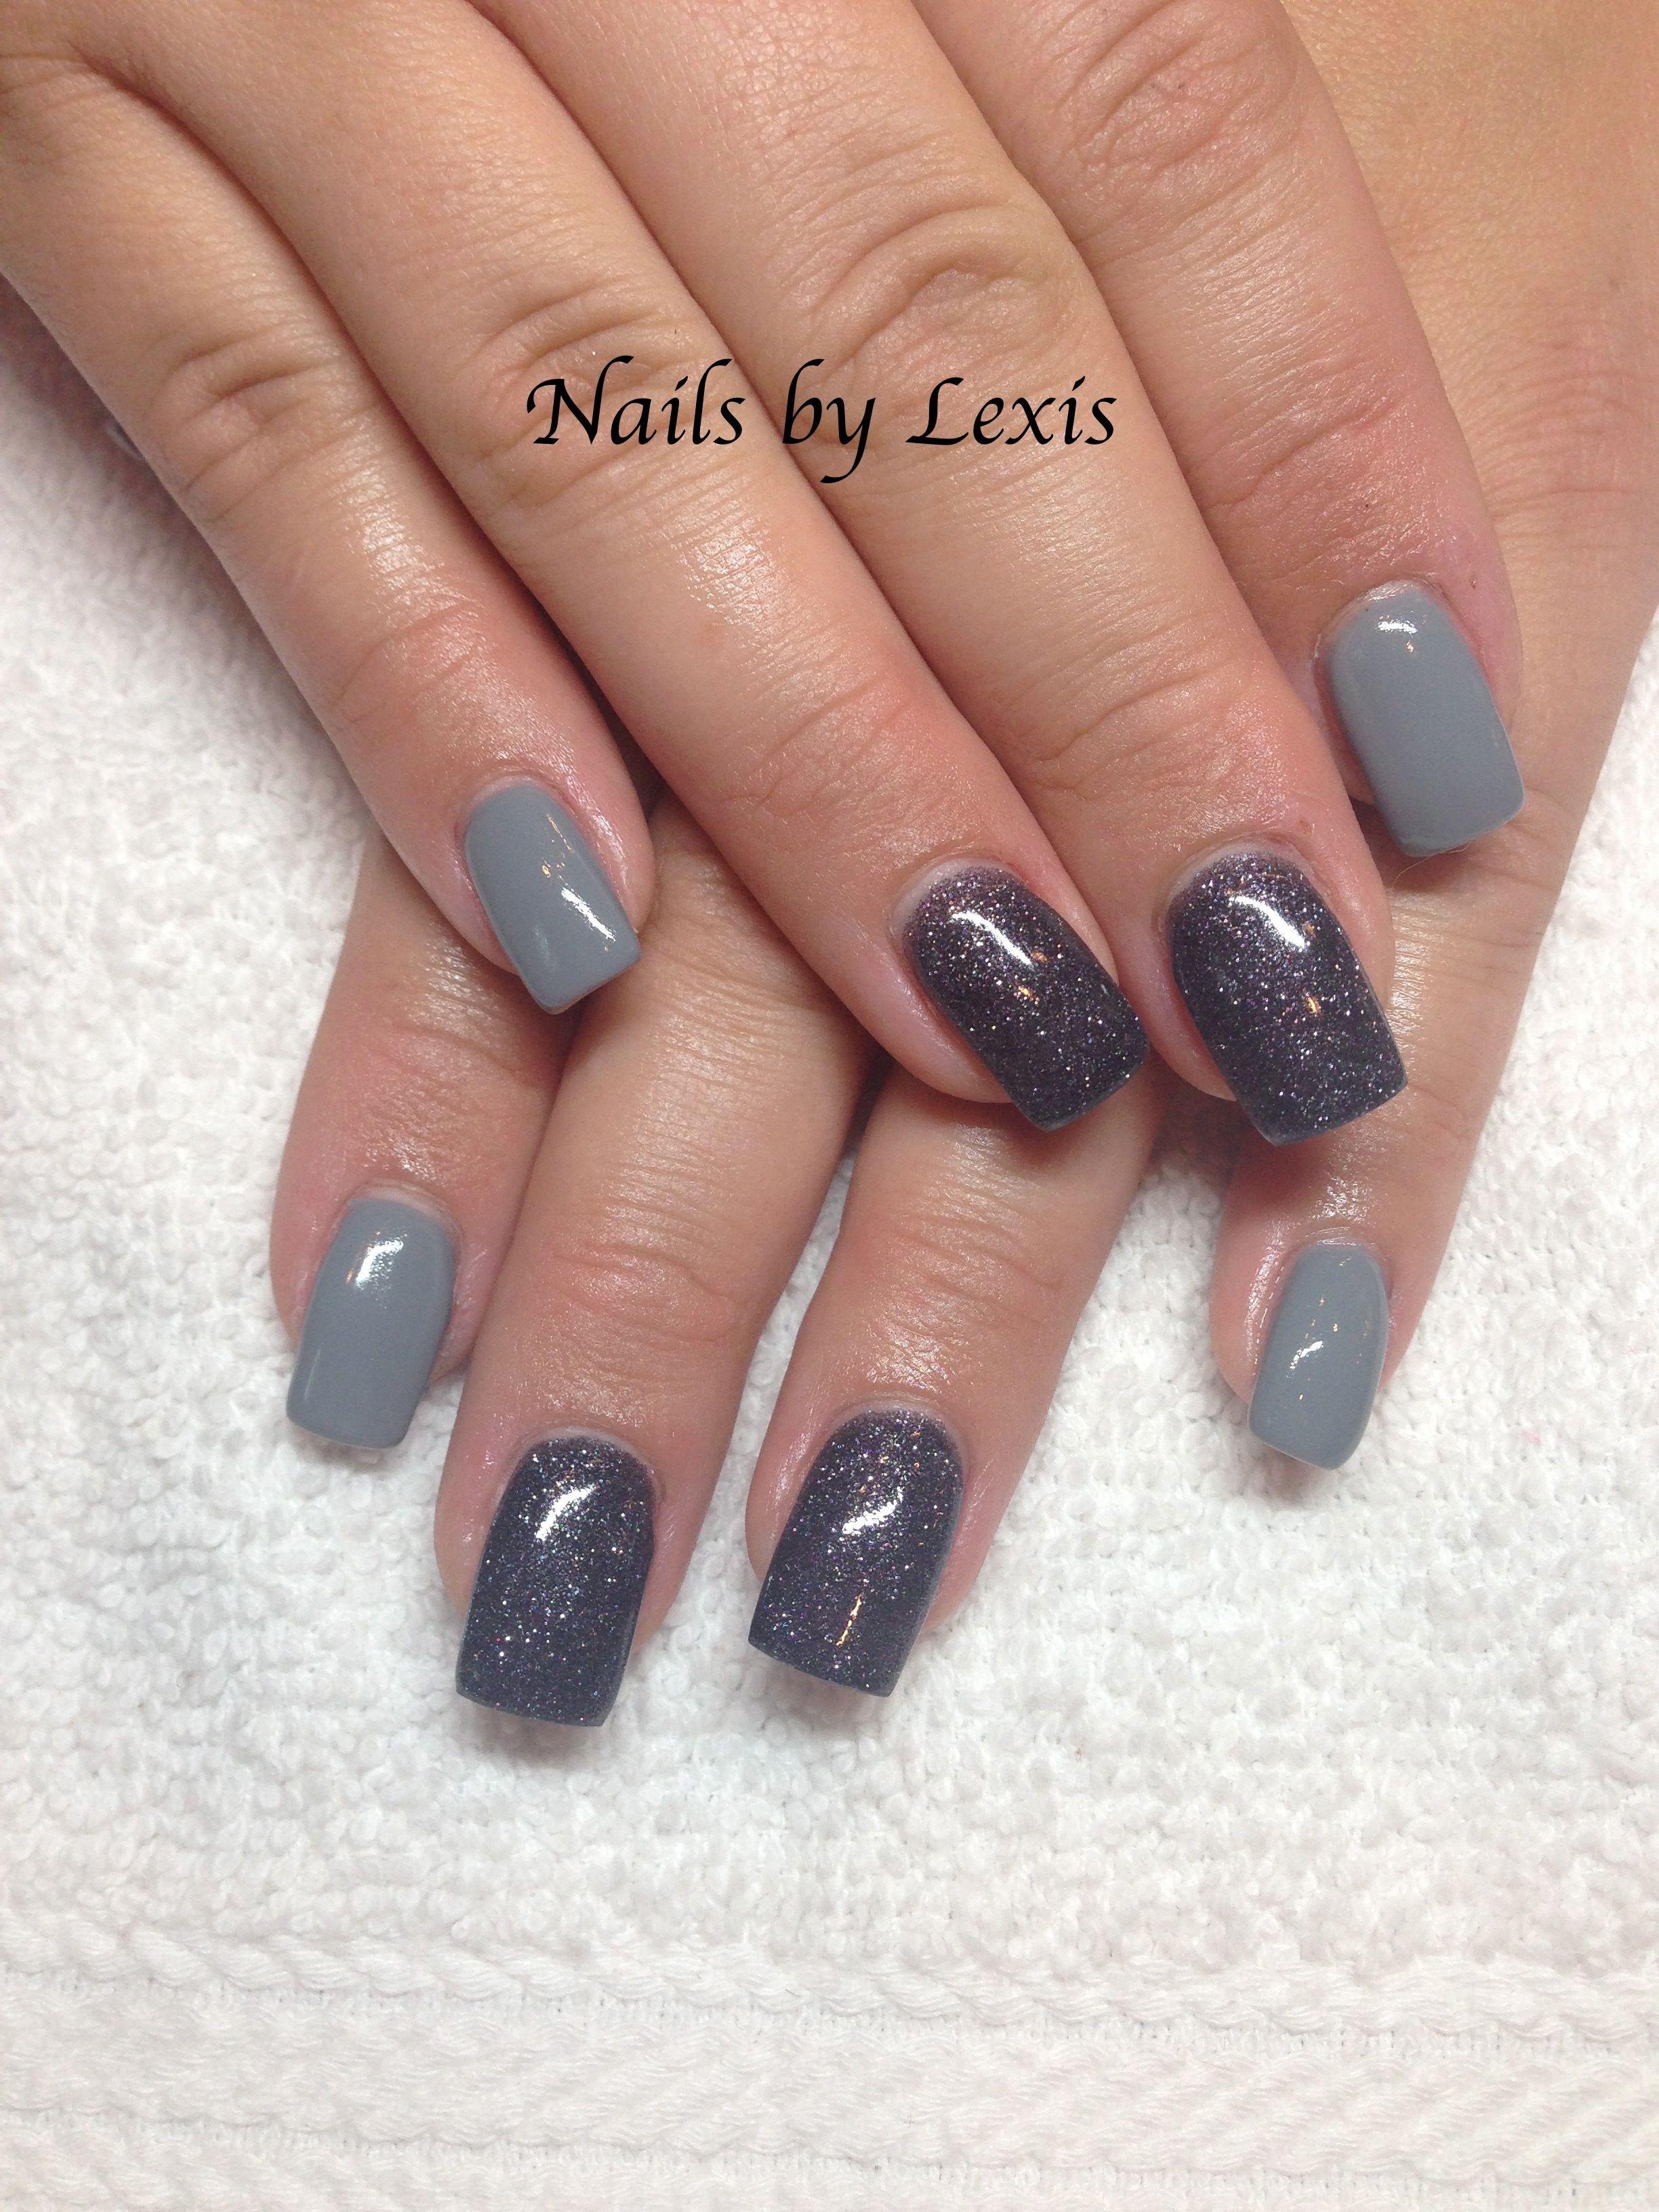 Fuzion Fall Gel nails by Lexis! | NAILS | Pinterest | Fall gel nails ...